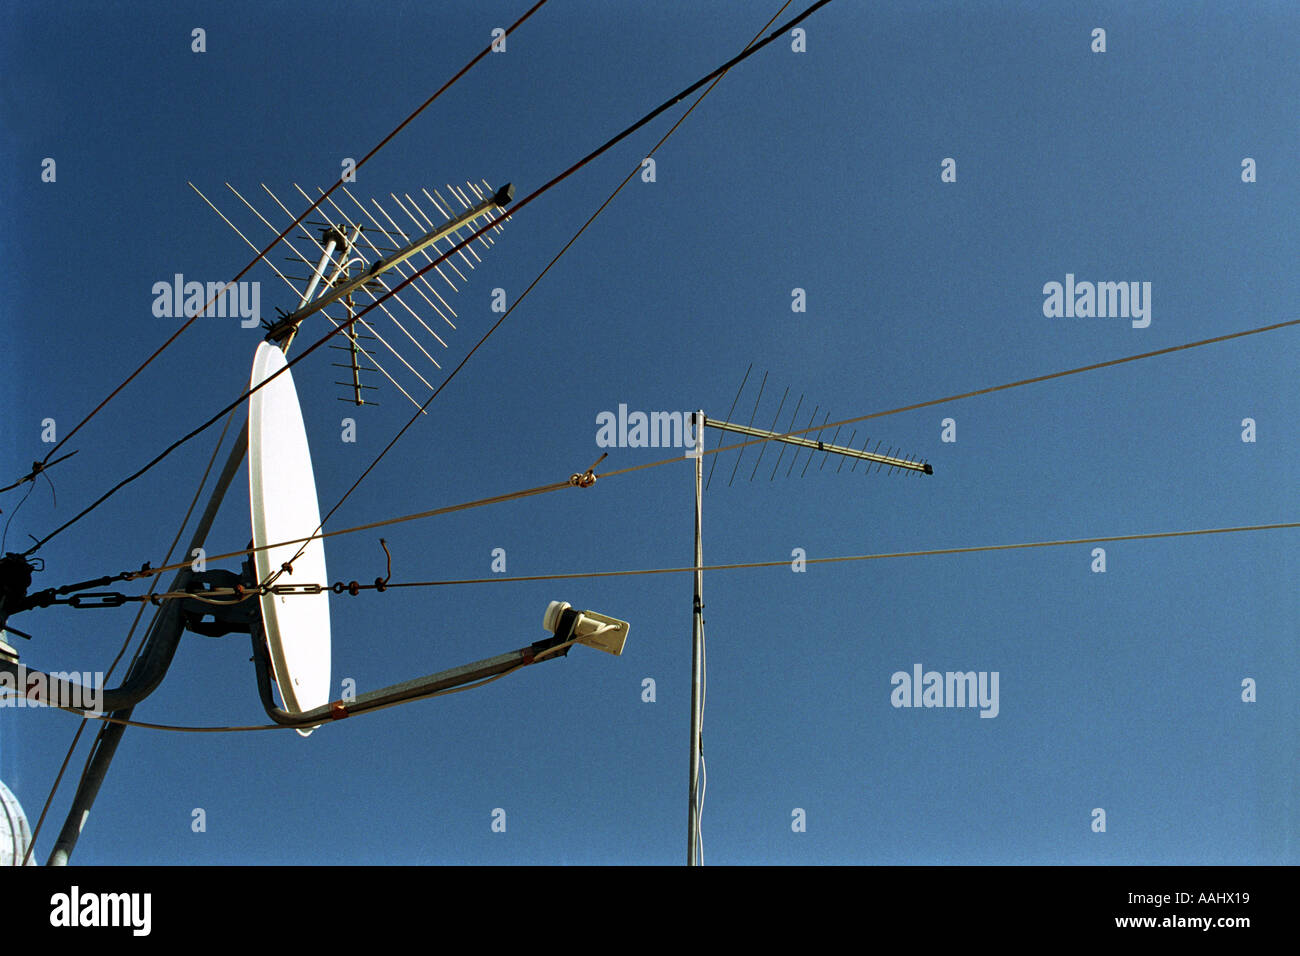 hight resolution of satellite dish receiver and aerials and cables and blue sky